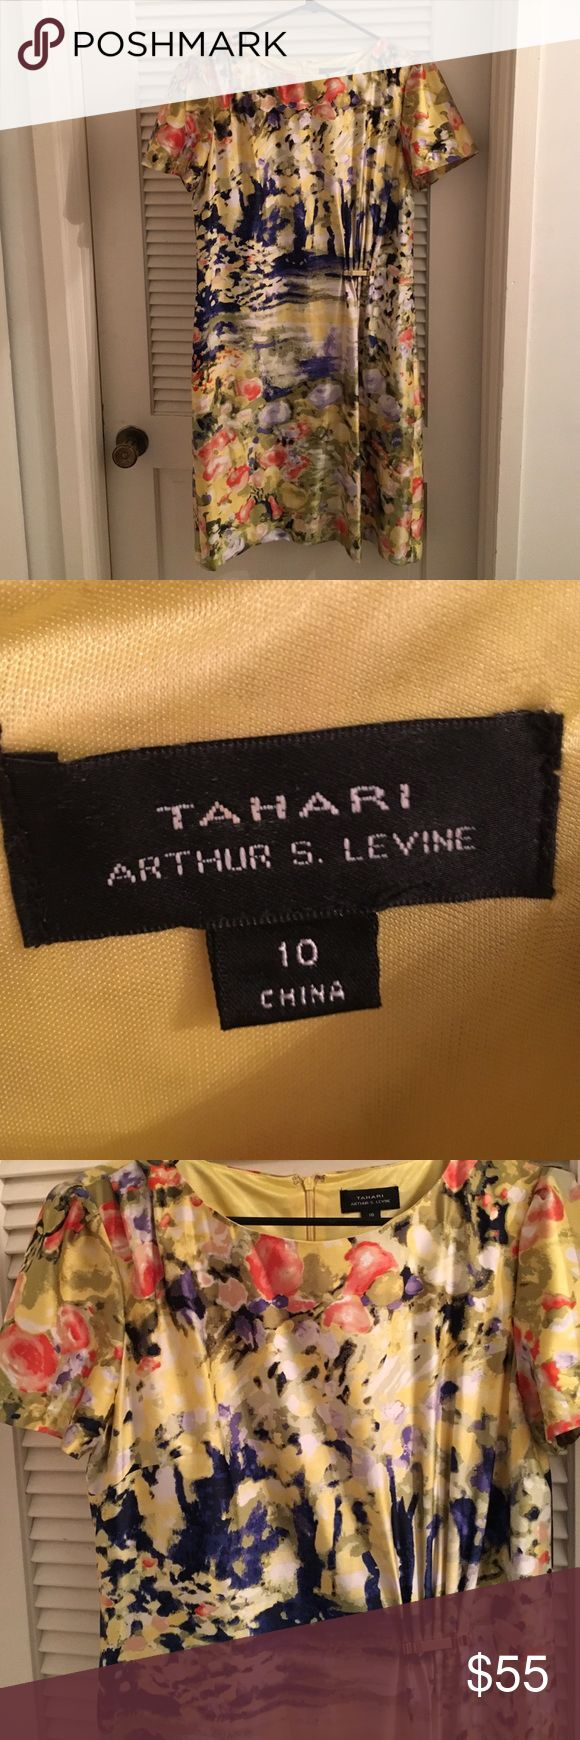 Never worn Yellow Tahari dress New without tags gorgeous happy Elle Tahari dress. Can be used for office attire, dressed up or just dressy casual. Looks really nice on but I haven't worn it and I'm clearing out my closet! Tahari Dresses Midi